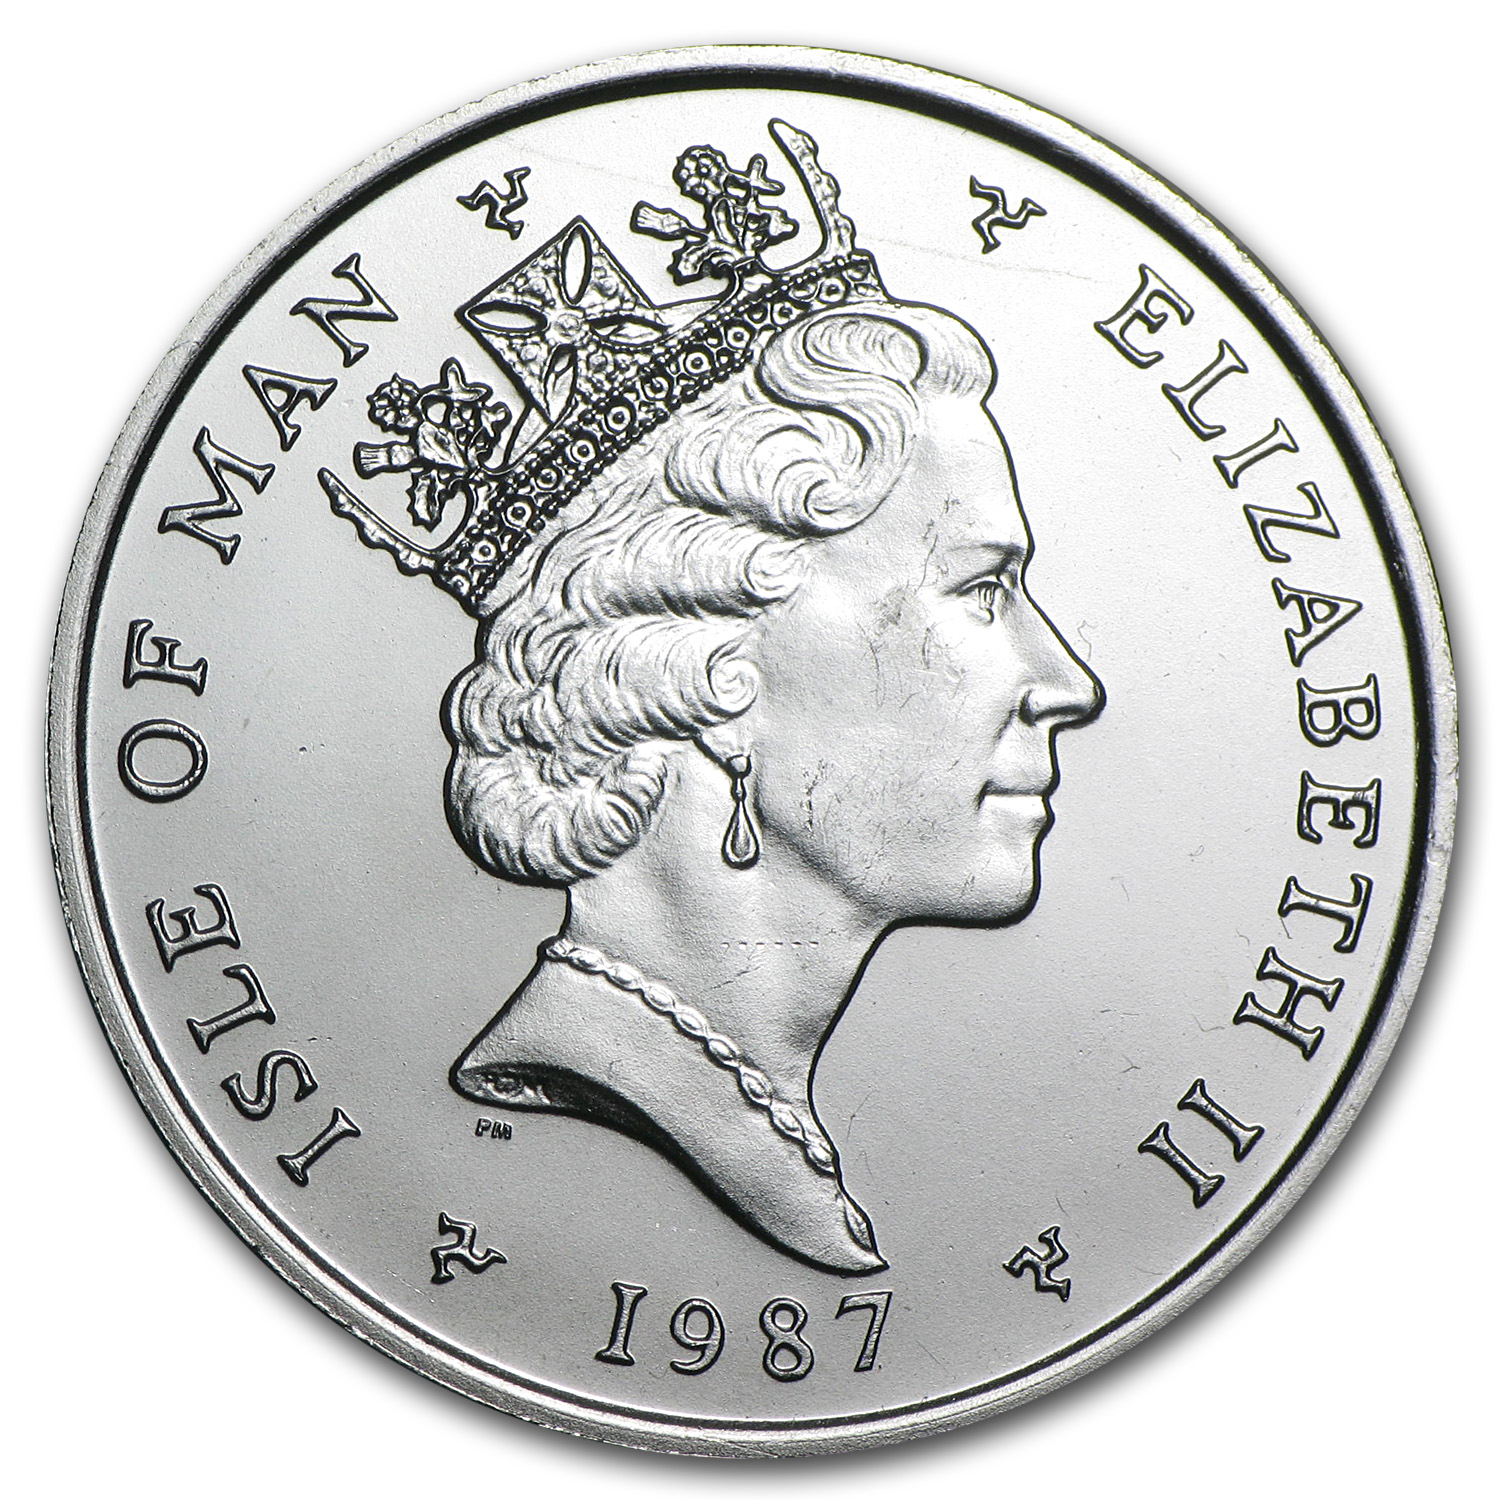 1987 1 oz Isle of Man Platinum Noble (Proof &/or Uncirculated)